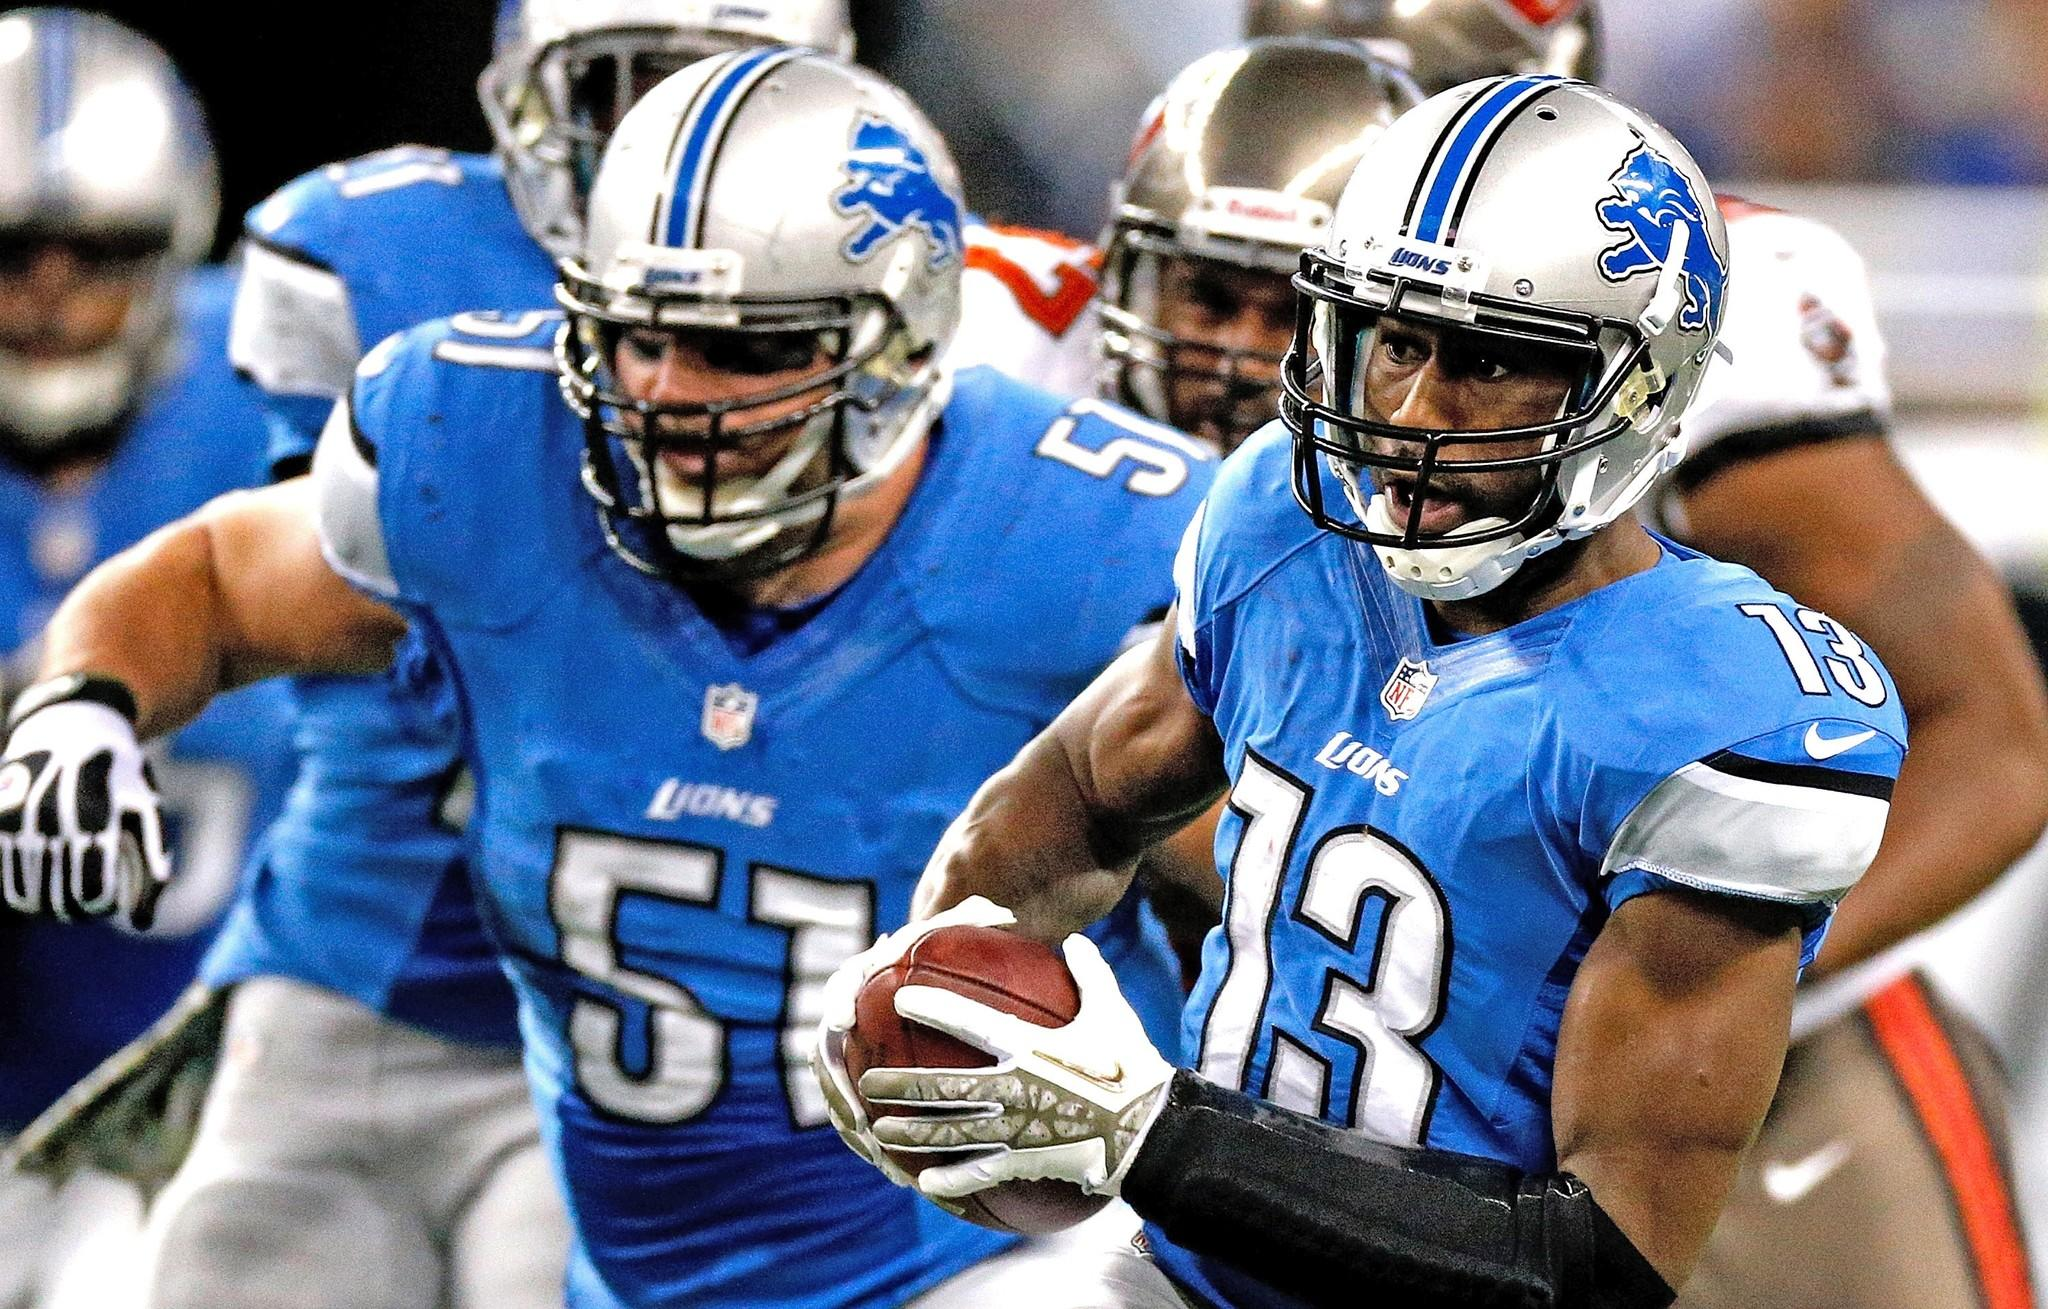 Nate Burleson heads up the field with Lions teammate Dominic against the Buccaneers.